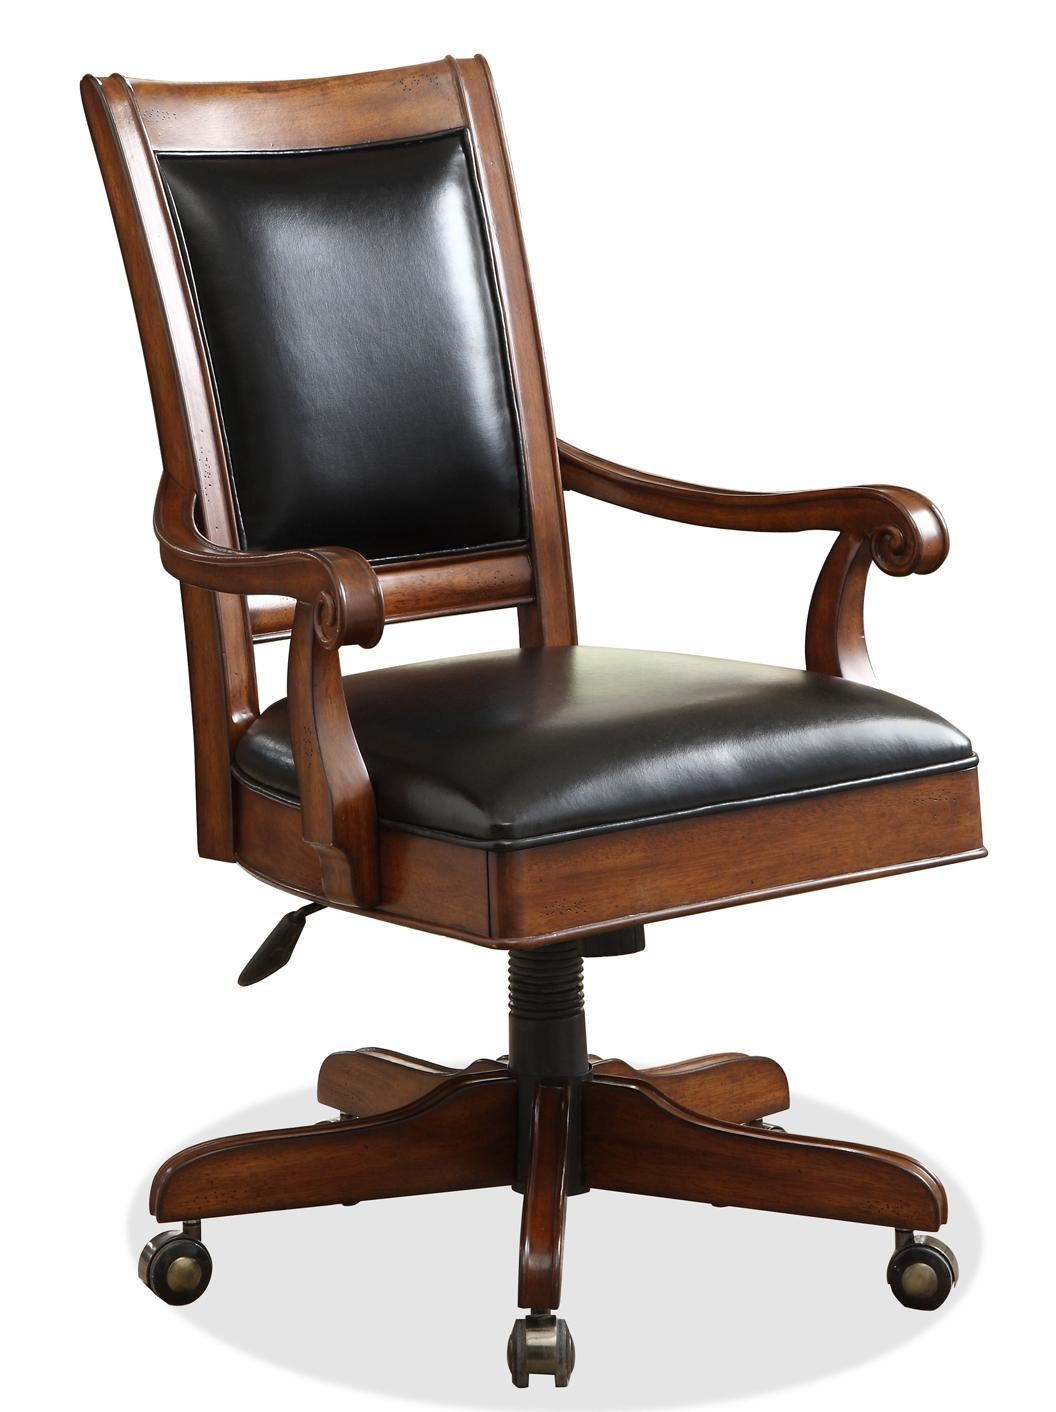 Leather And Wood Chair Bristol Court Caster Equipped Wooden Desk Chair With Leather Covered Seat By Riverside Furniture At Goffena Furniture Mattress Center